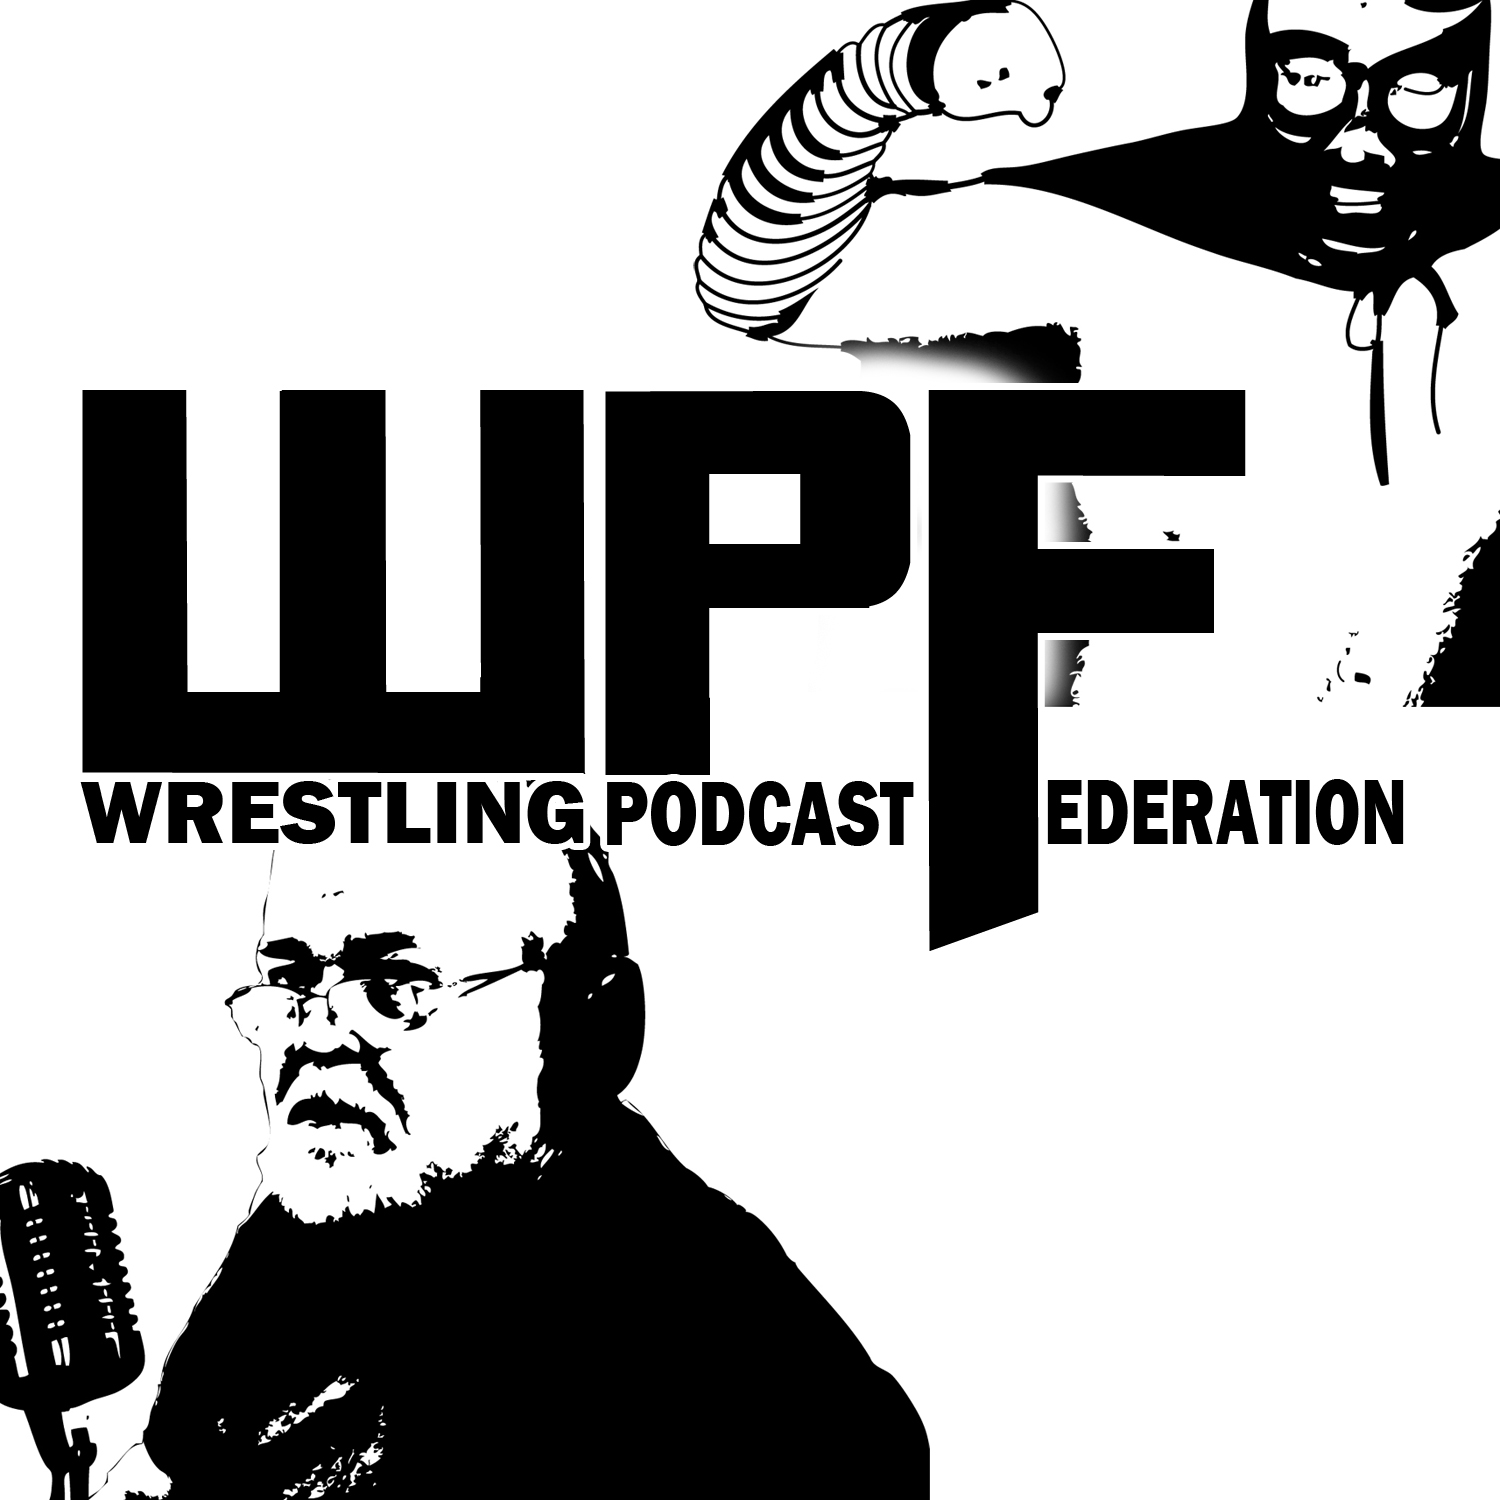 Wrestling Podcast Federation